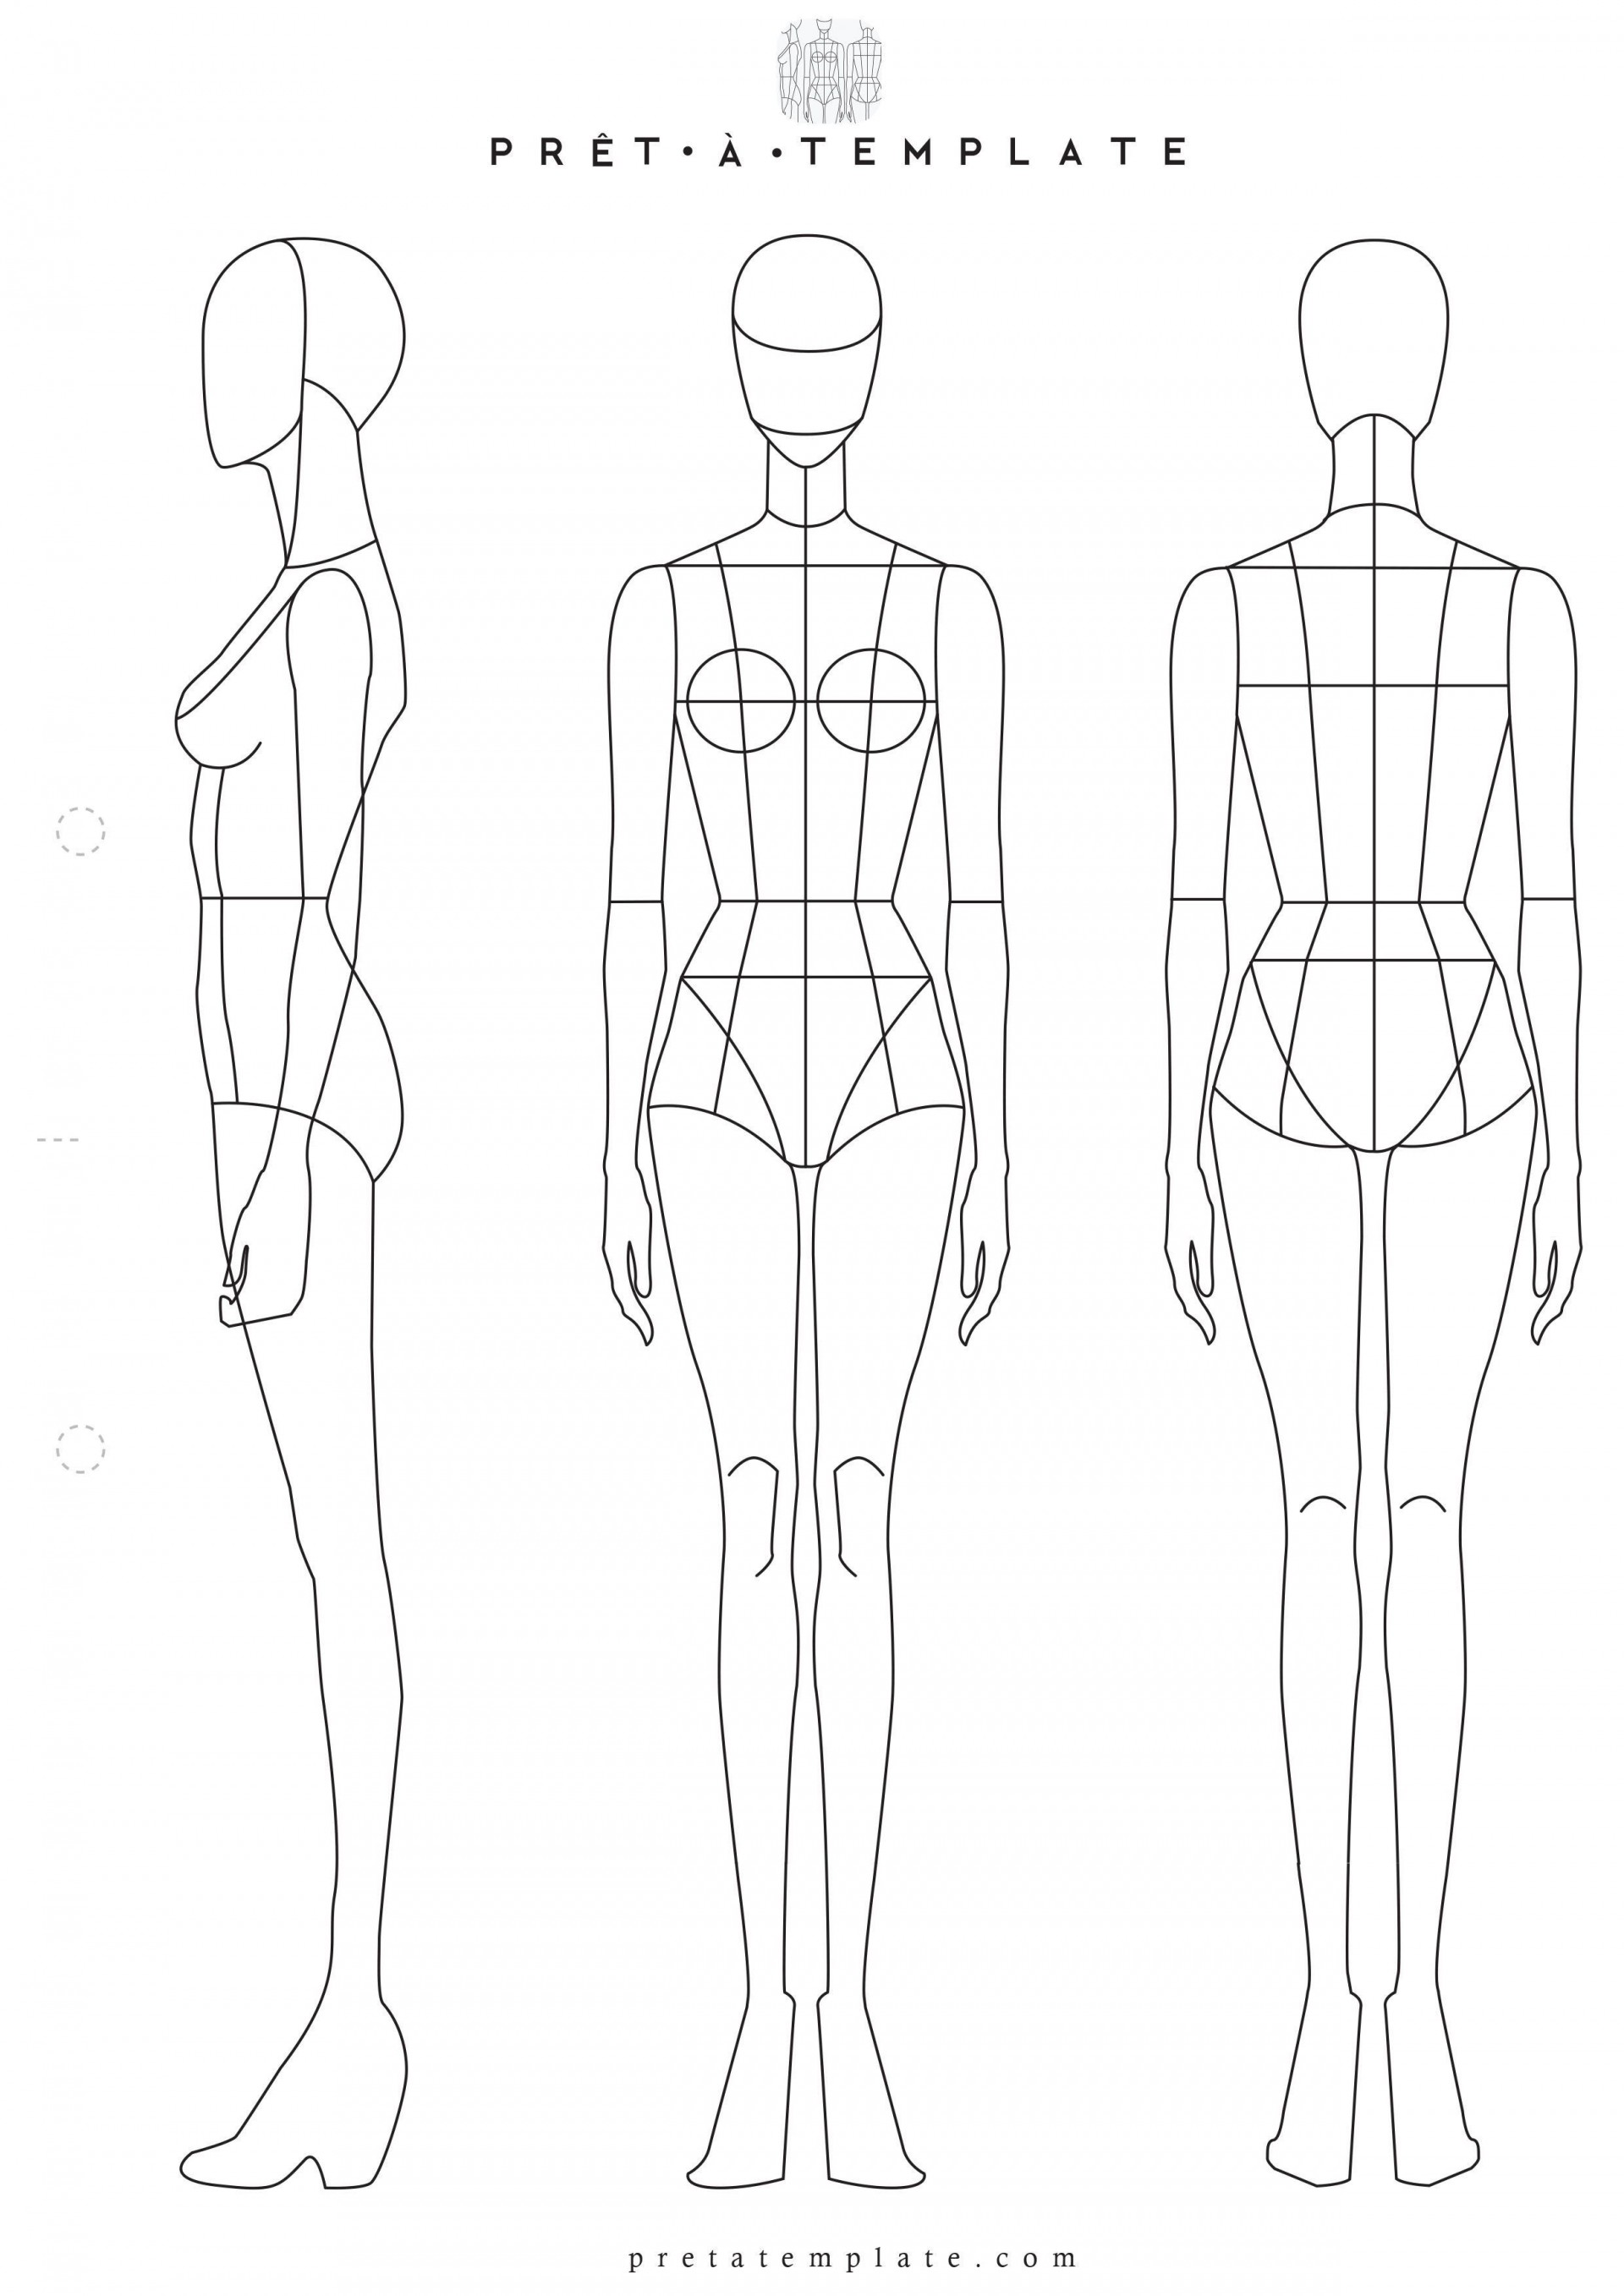 002 Stunning Body Template For Fashion Design Highest Quality  Female Male Human1920